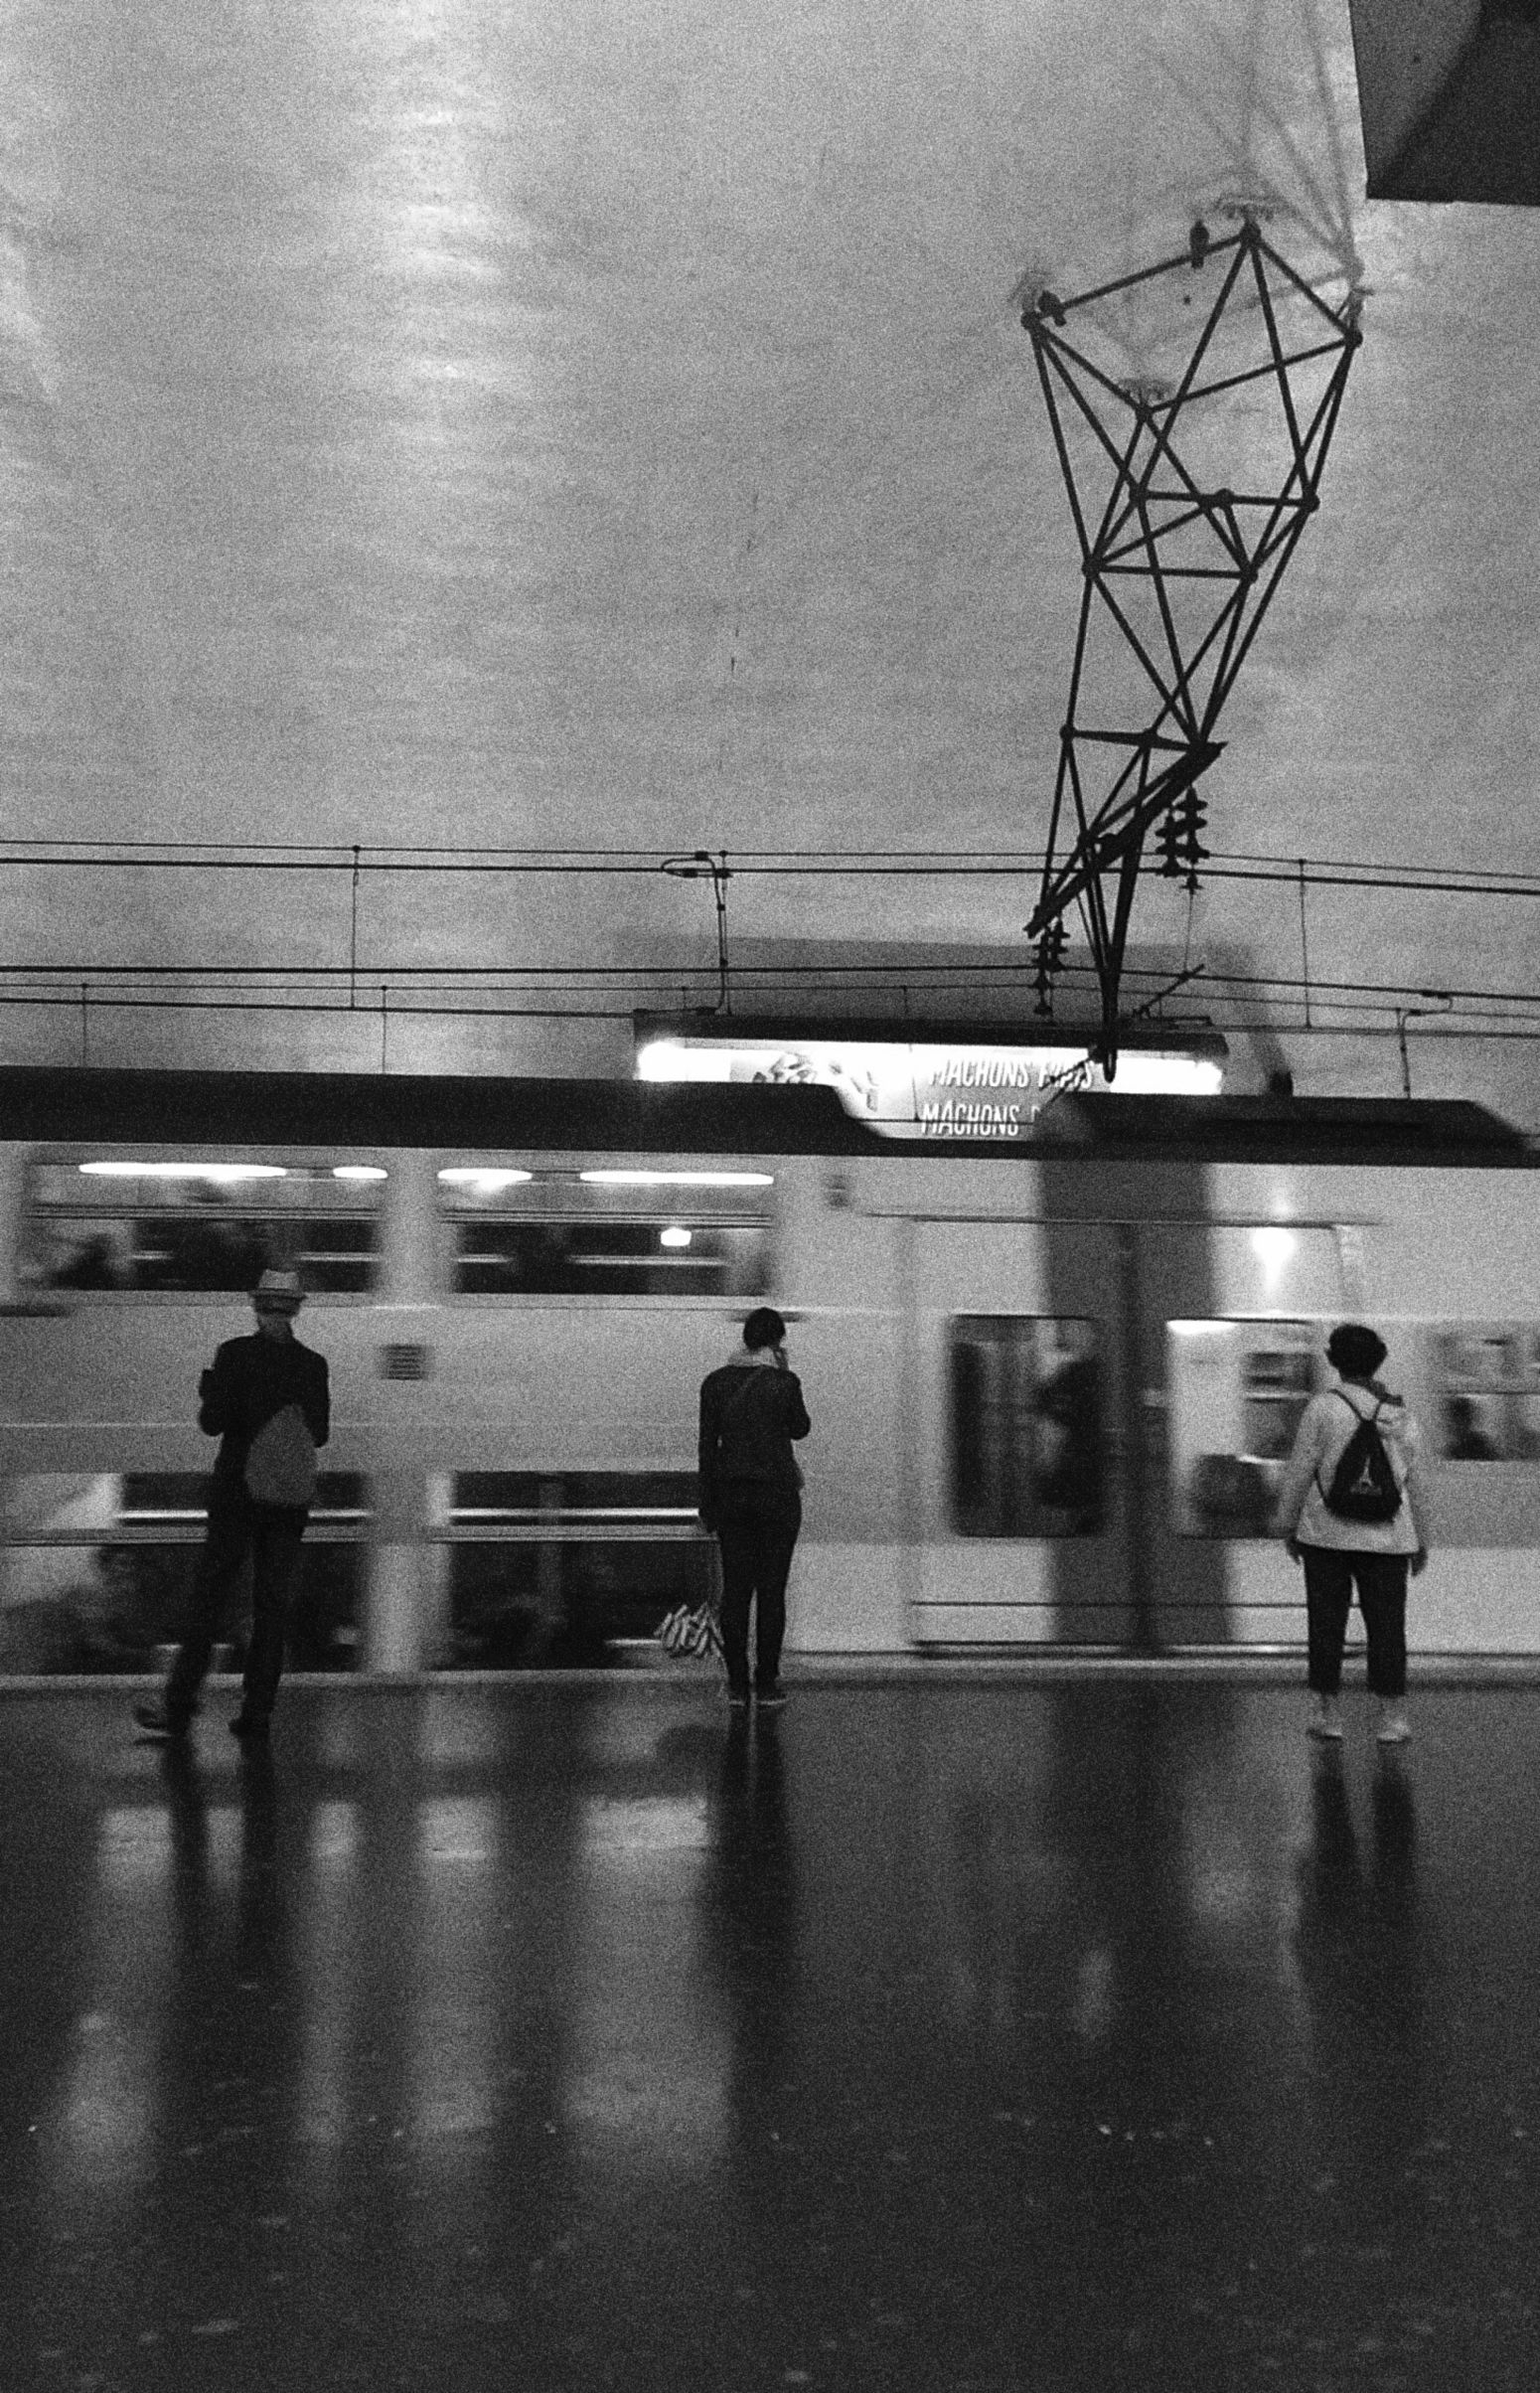 Black & White Loneliness Thatishowmodernitylookslike Parisian Subway Stories // RER subway line in Paris // Underground solitude // Stanislas Dejoie, Dualias // Avant-propos (my weblog post in French), @ http://dualias.fr/avant-propos // In need of positive collective actions & rebirth of universal peace around ++